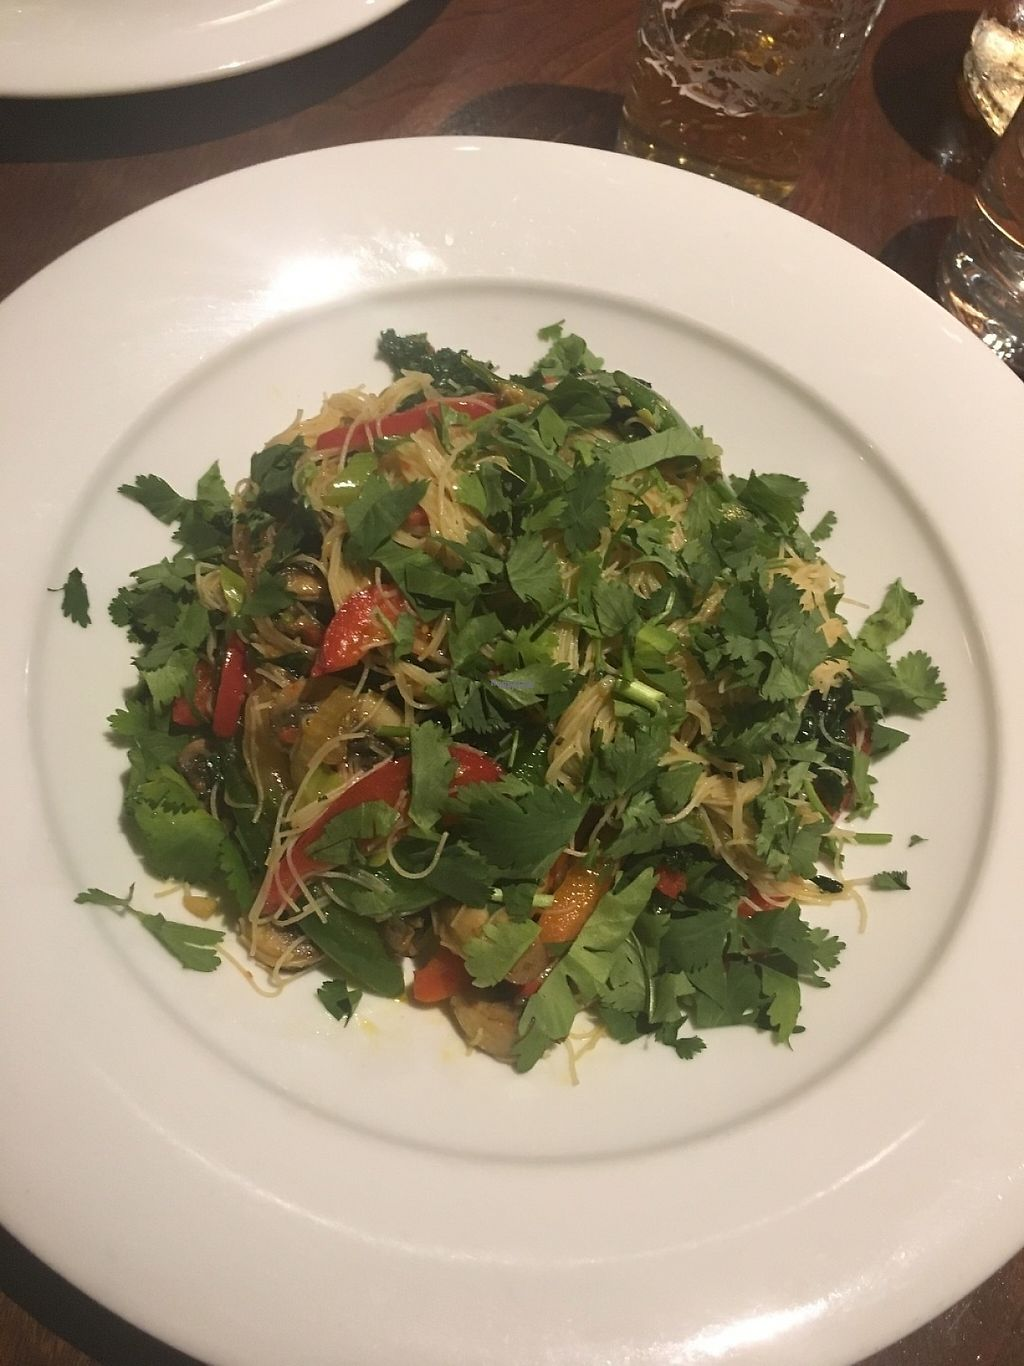 "Photo of Aysgarth Falls Hotel Pub  by <a href=""/members/profile/Sarlougamb28"">Sarlougamb28</a> <br/>Singapore noodles. Delicious <br/> April 3, 2017  - <a href='/contact/abuse/image/89472/244454'>Report</a>"